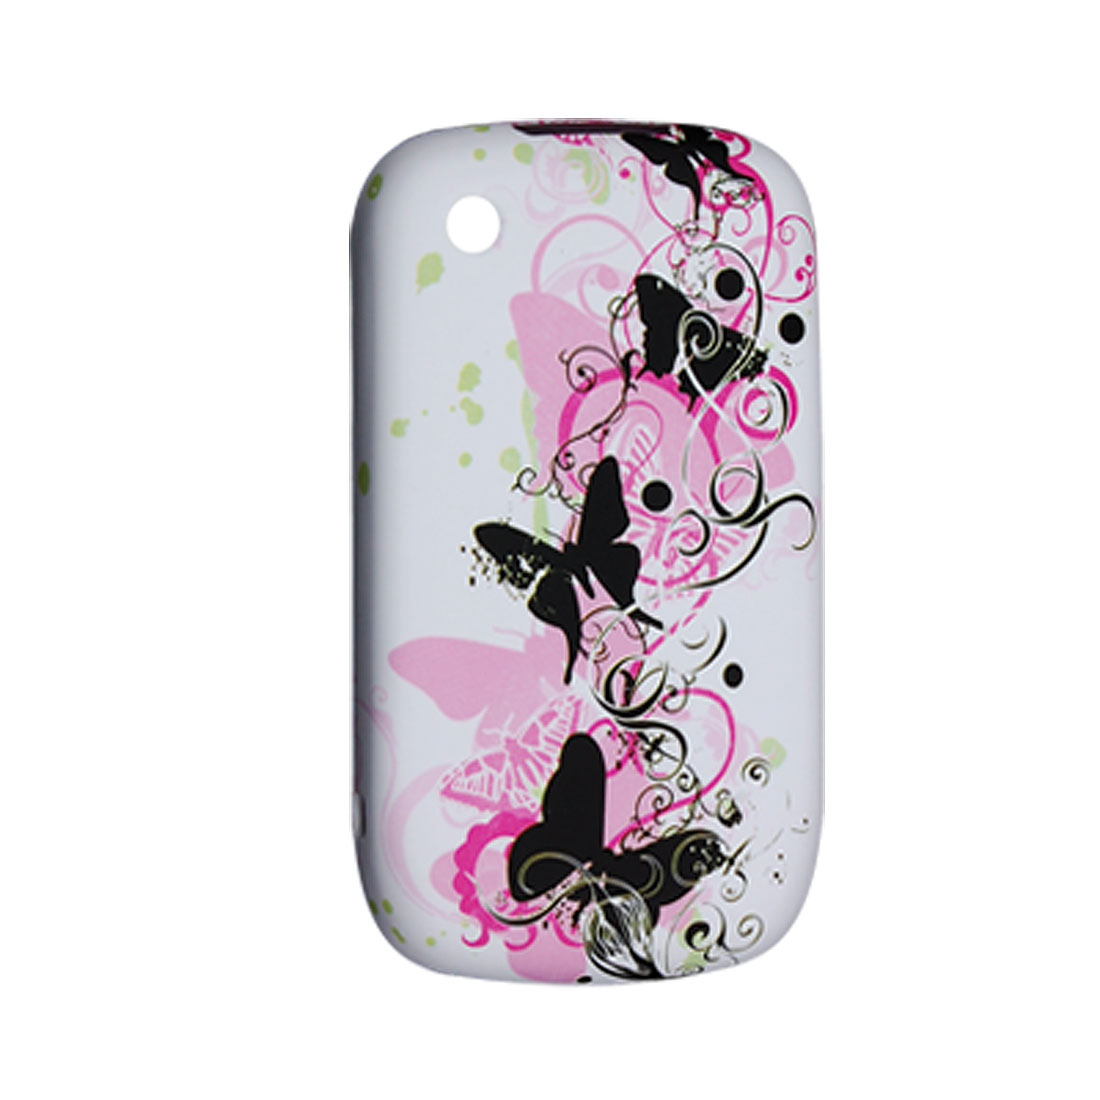 Soft Plastic Butterfly Print Shield Case for Blackberry 8520